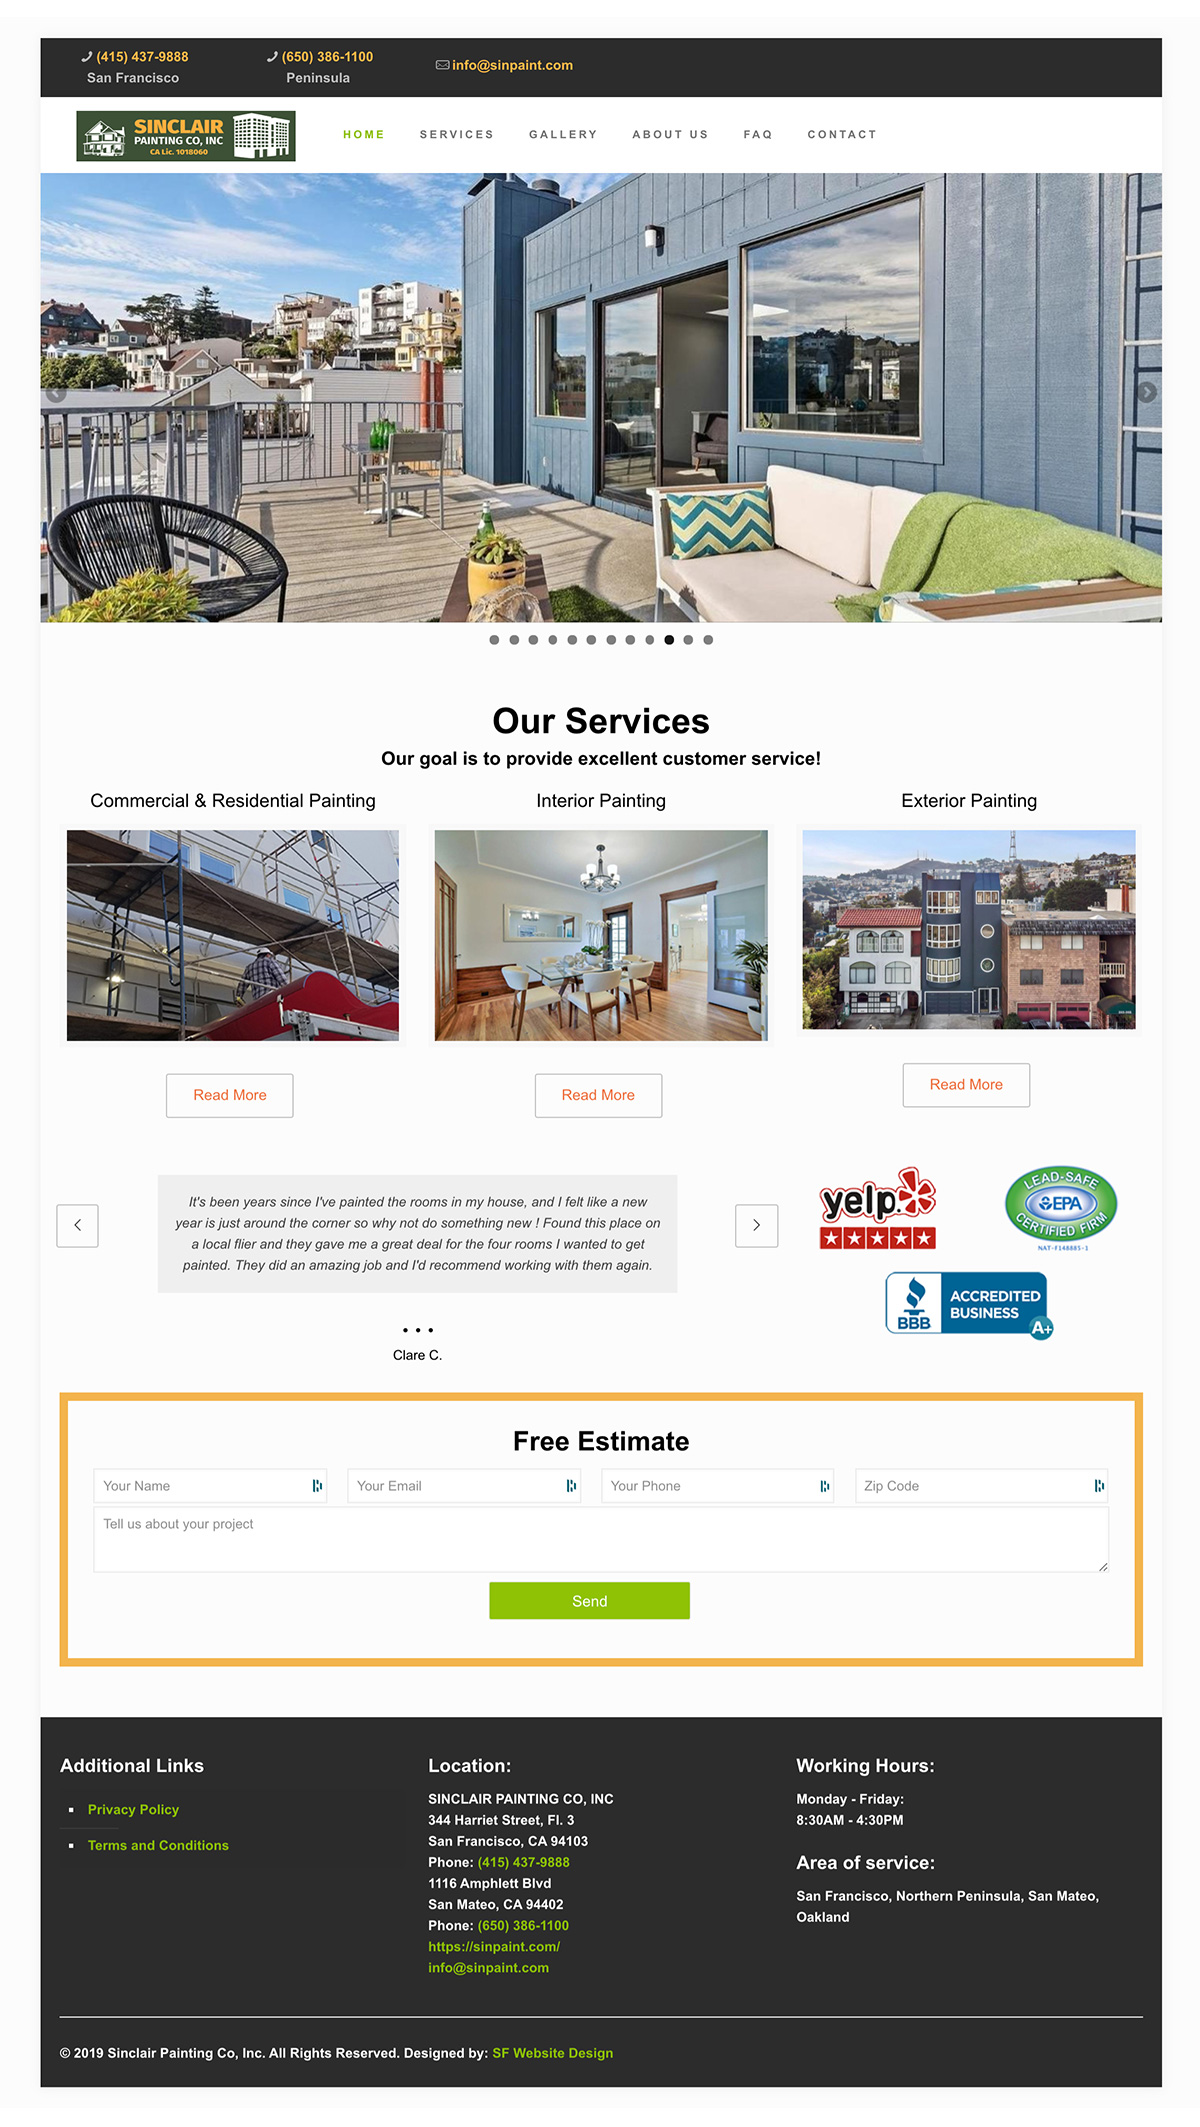 Sinclair San Francisco Residential and Commercial painting web design